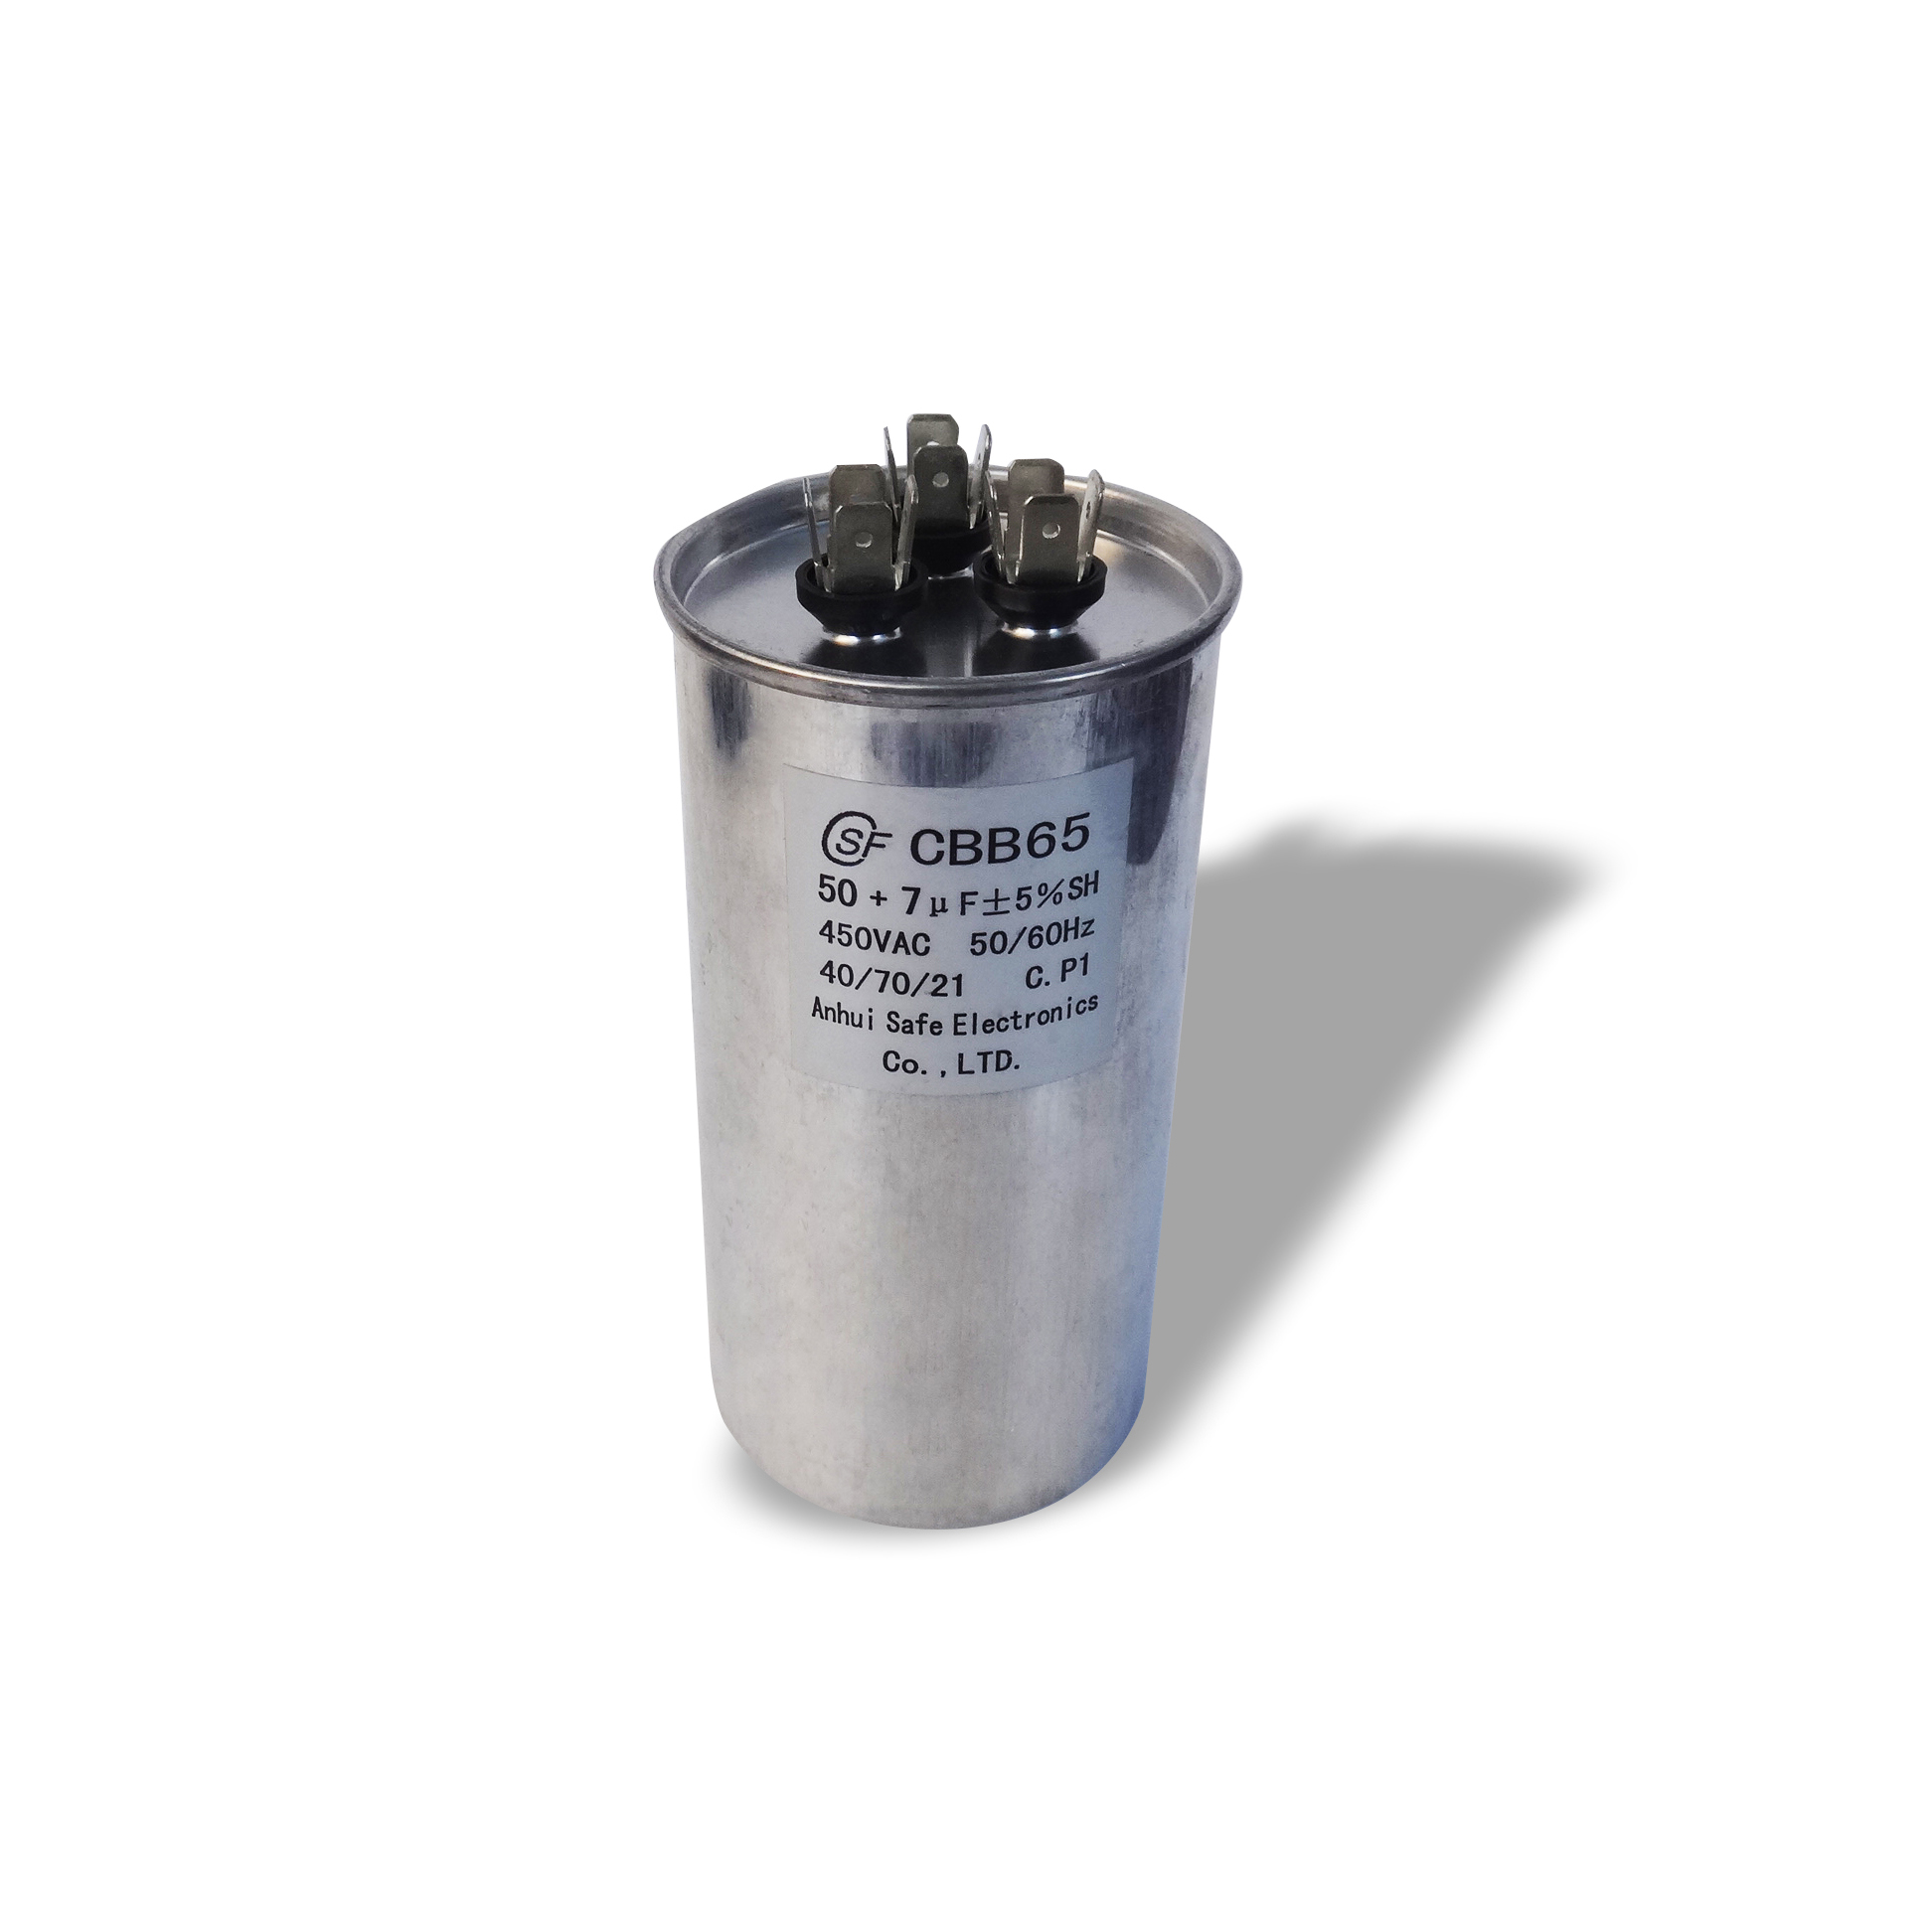 Chinese Supplier Air Conditioner Capacitor Cbb65 With Terminal 34